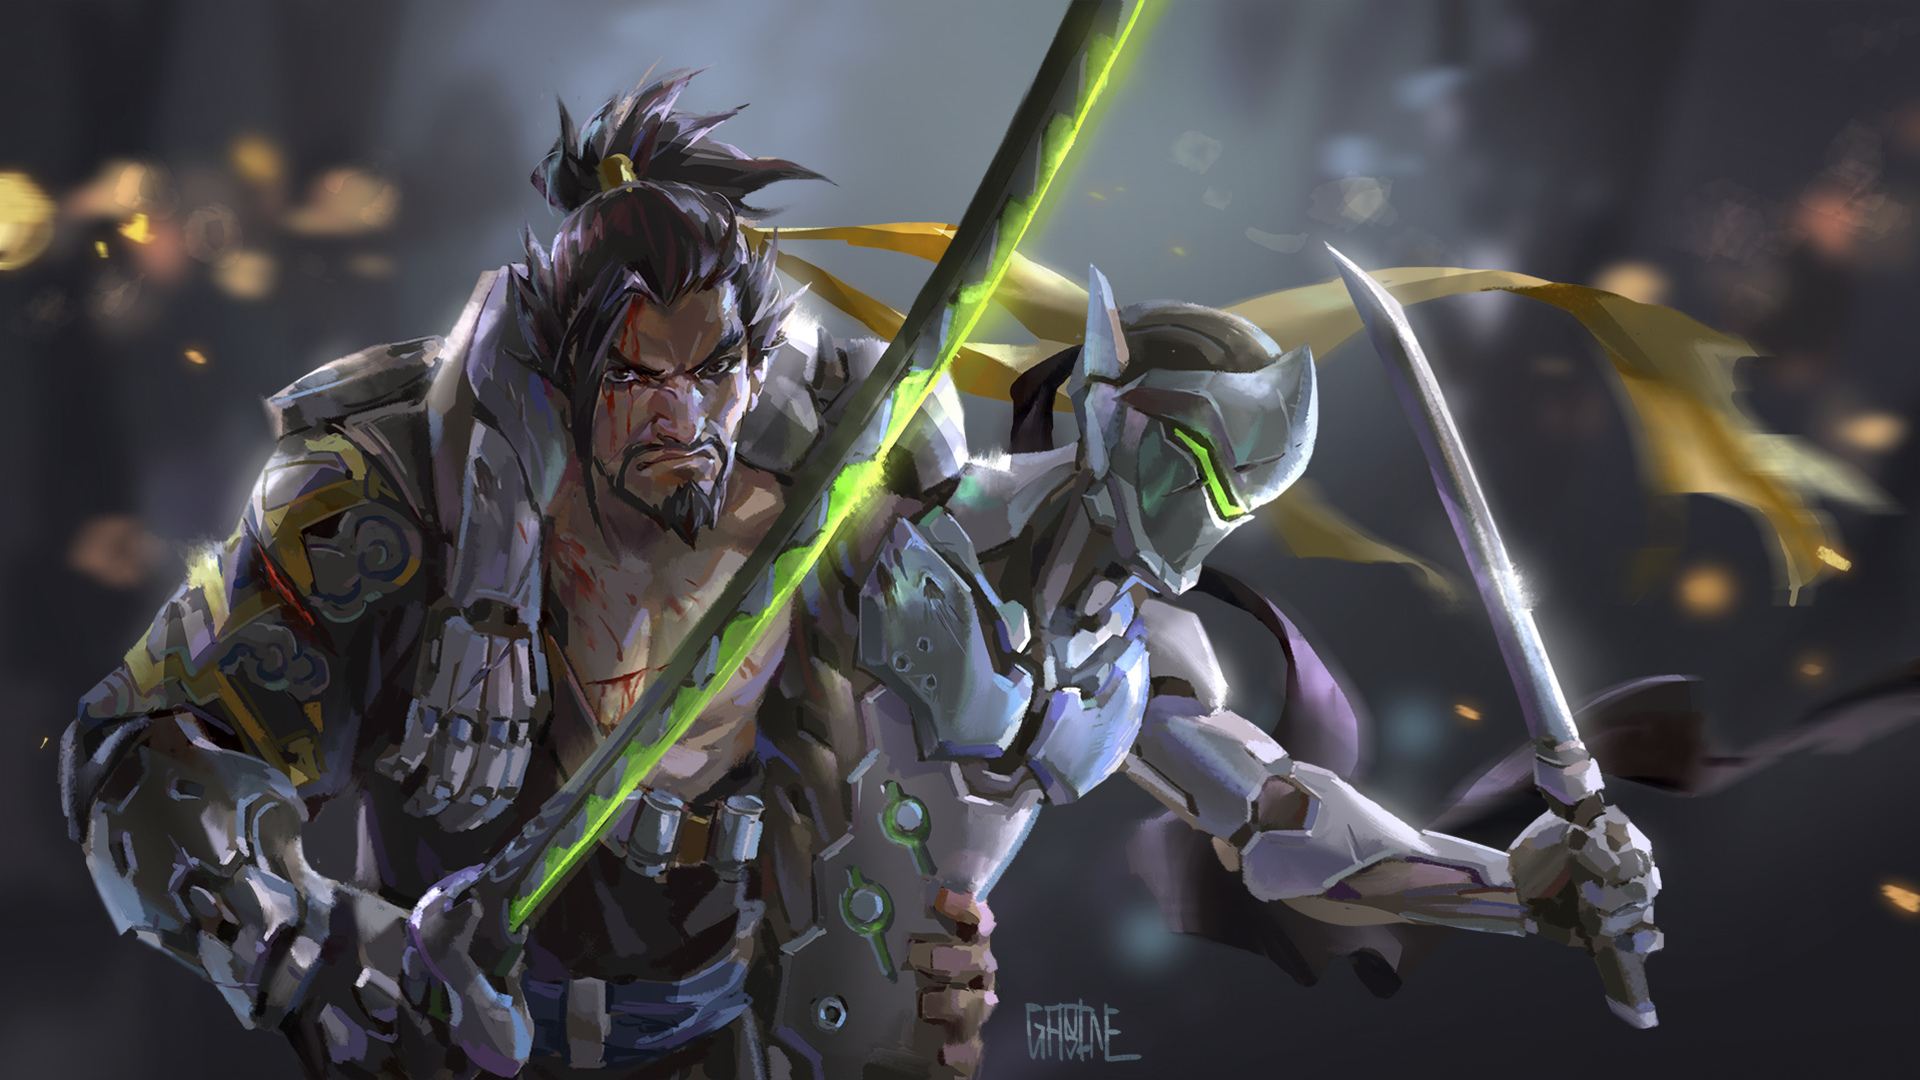 1920x1080 Genji Hanzo Overwatch Artwork Laptop Full Hd 1080p